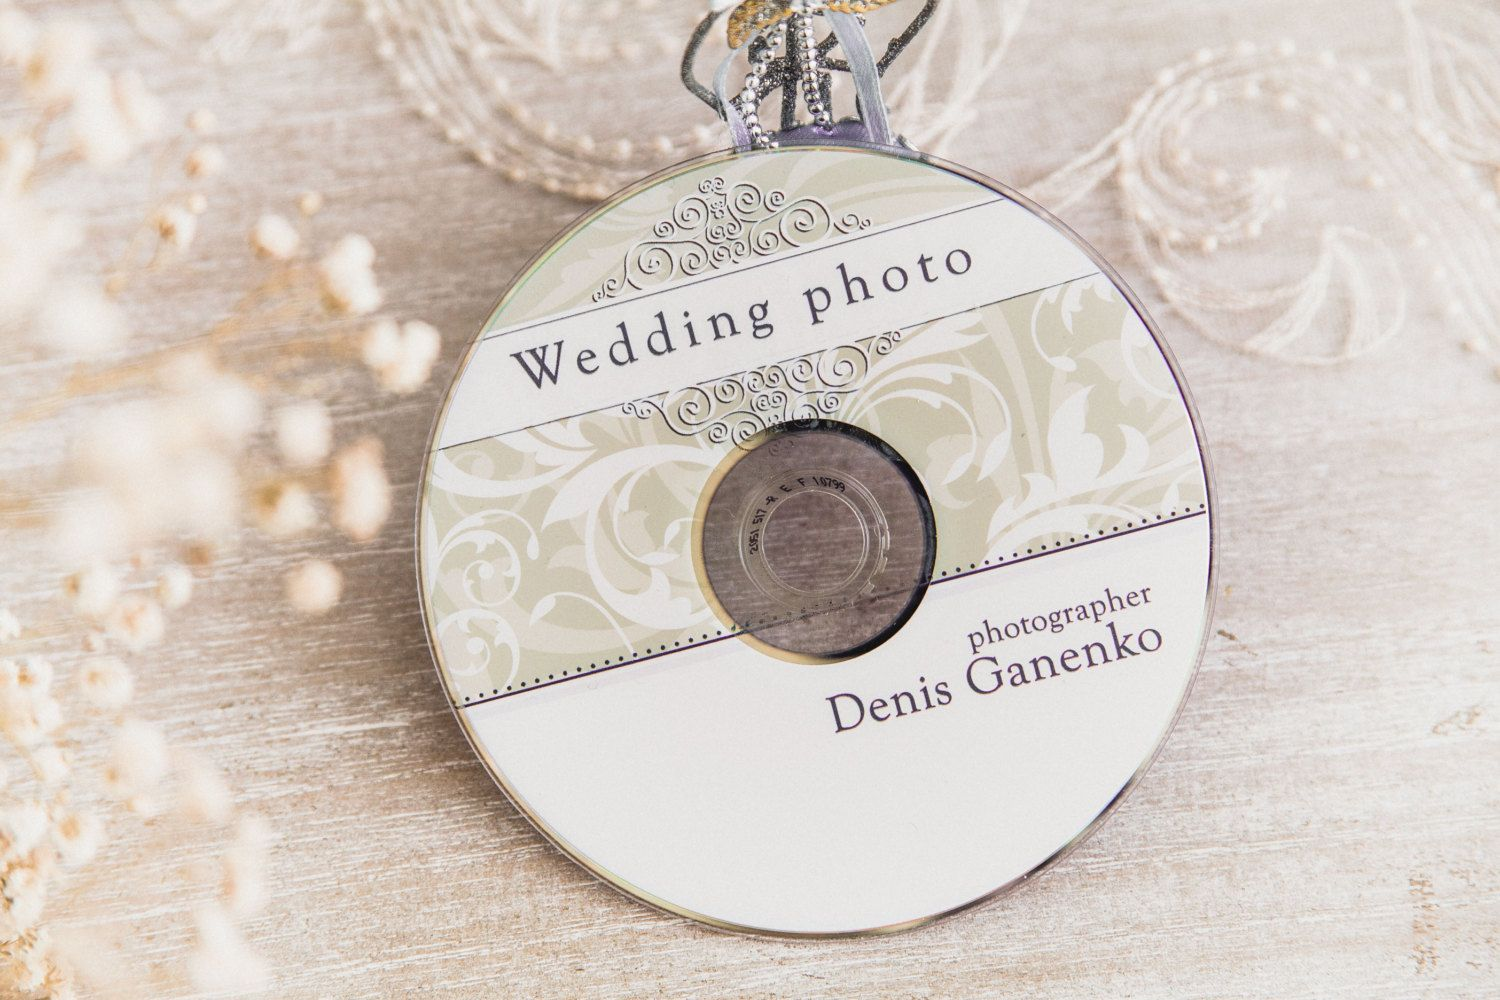 Wedding CdDvd Label Template Vintage Patterns Wedding Label